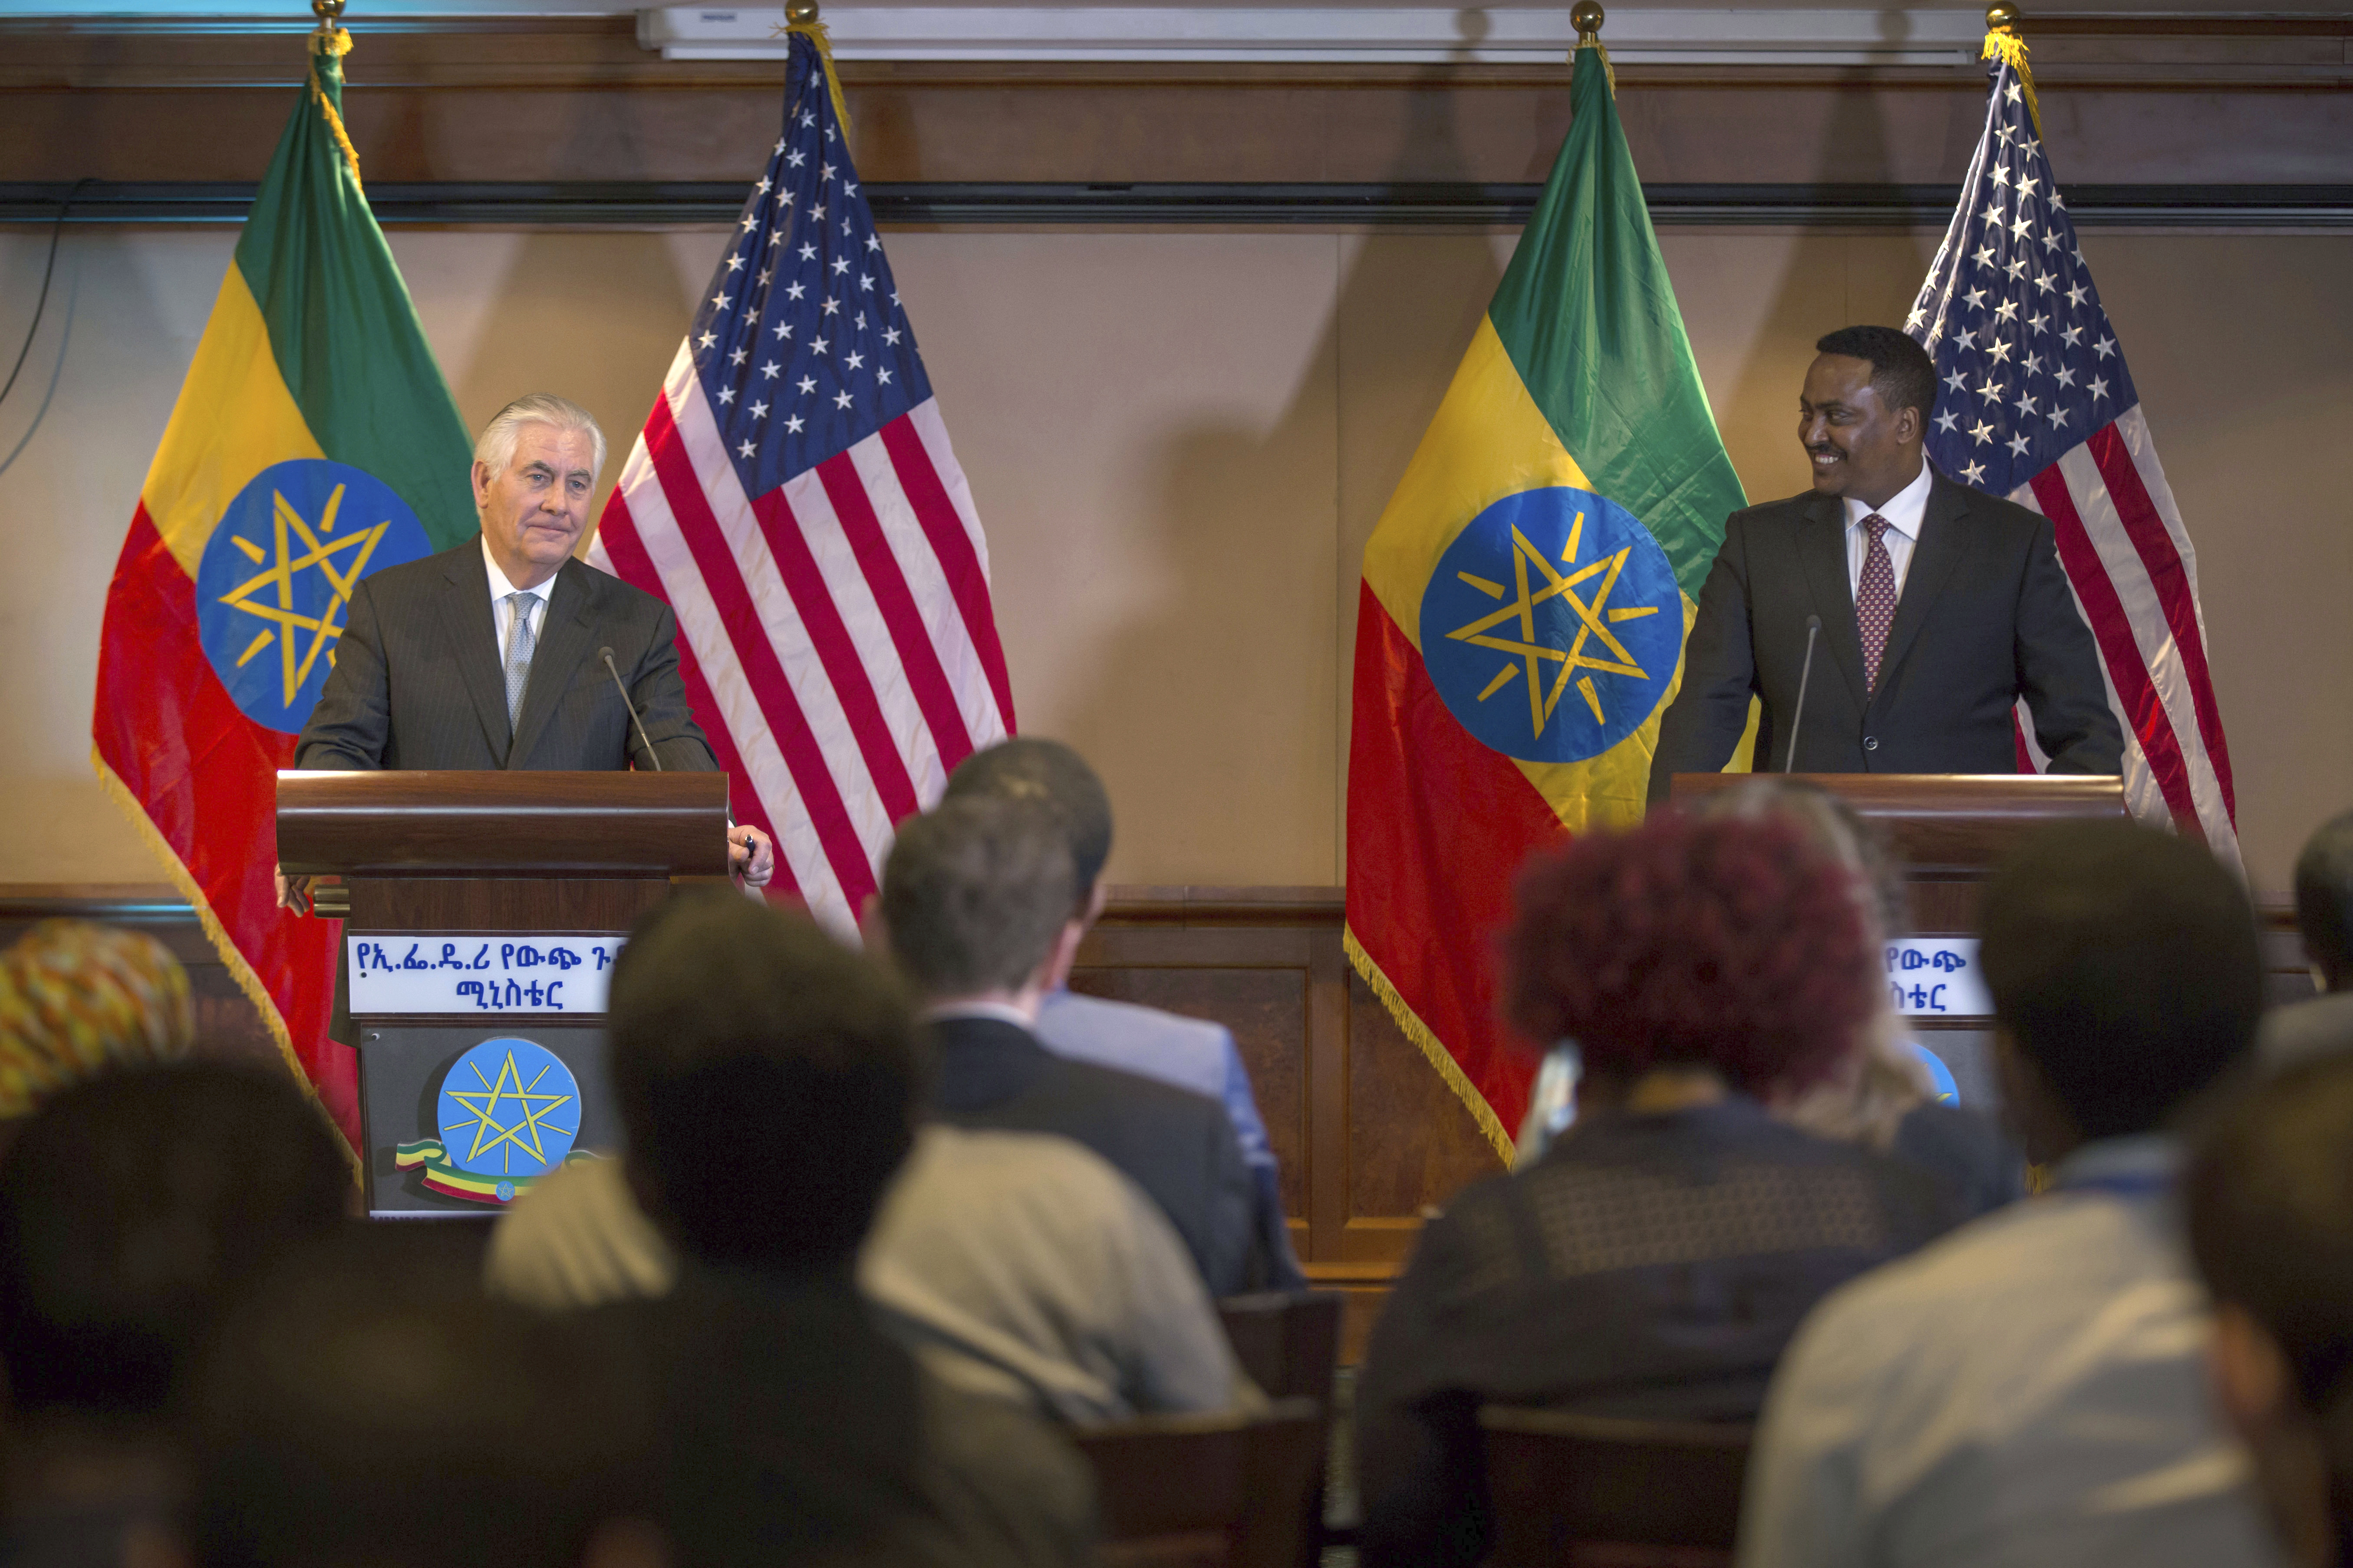 US Secretary of State Rex Tillerson, left, addresses the media after his meeting with Ethiopian Foreign Minister Dr. Workneh Gebeyehu at a joint press conference in Addis Ababa, Ethiopia, March 8, 2018.